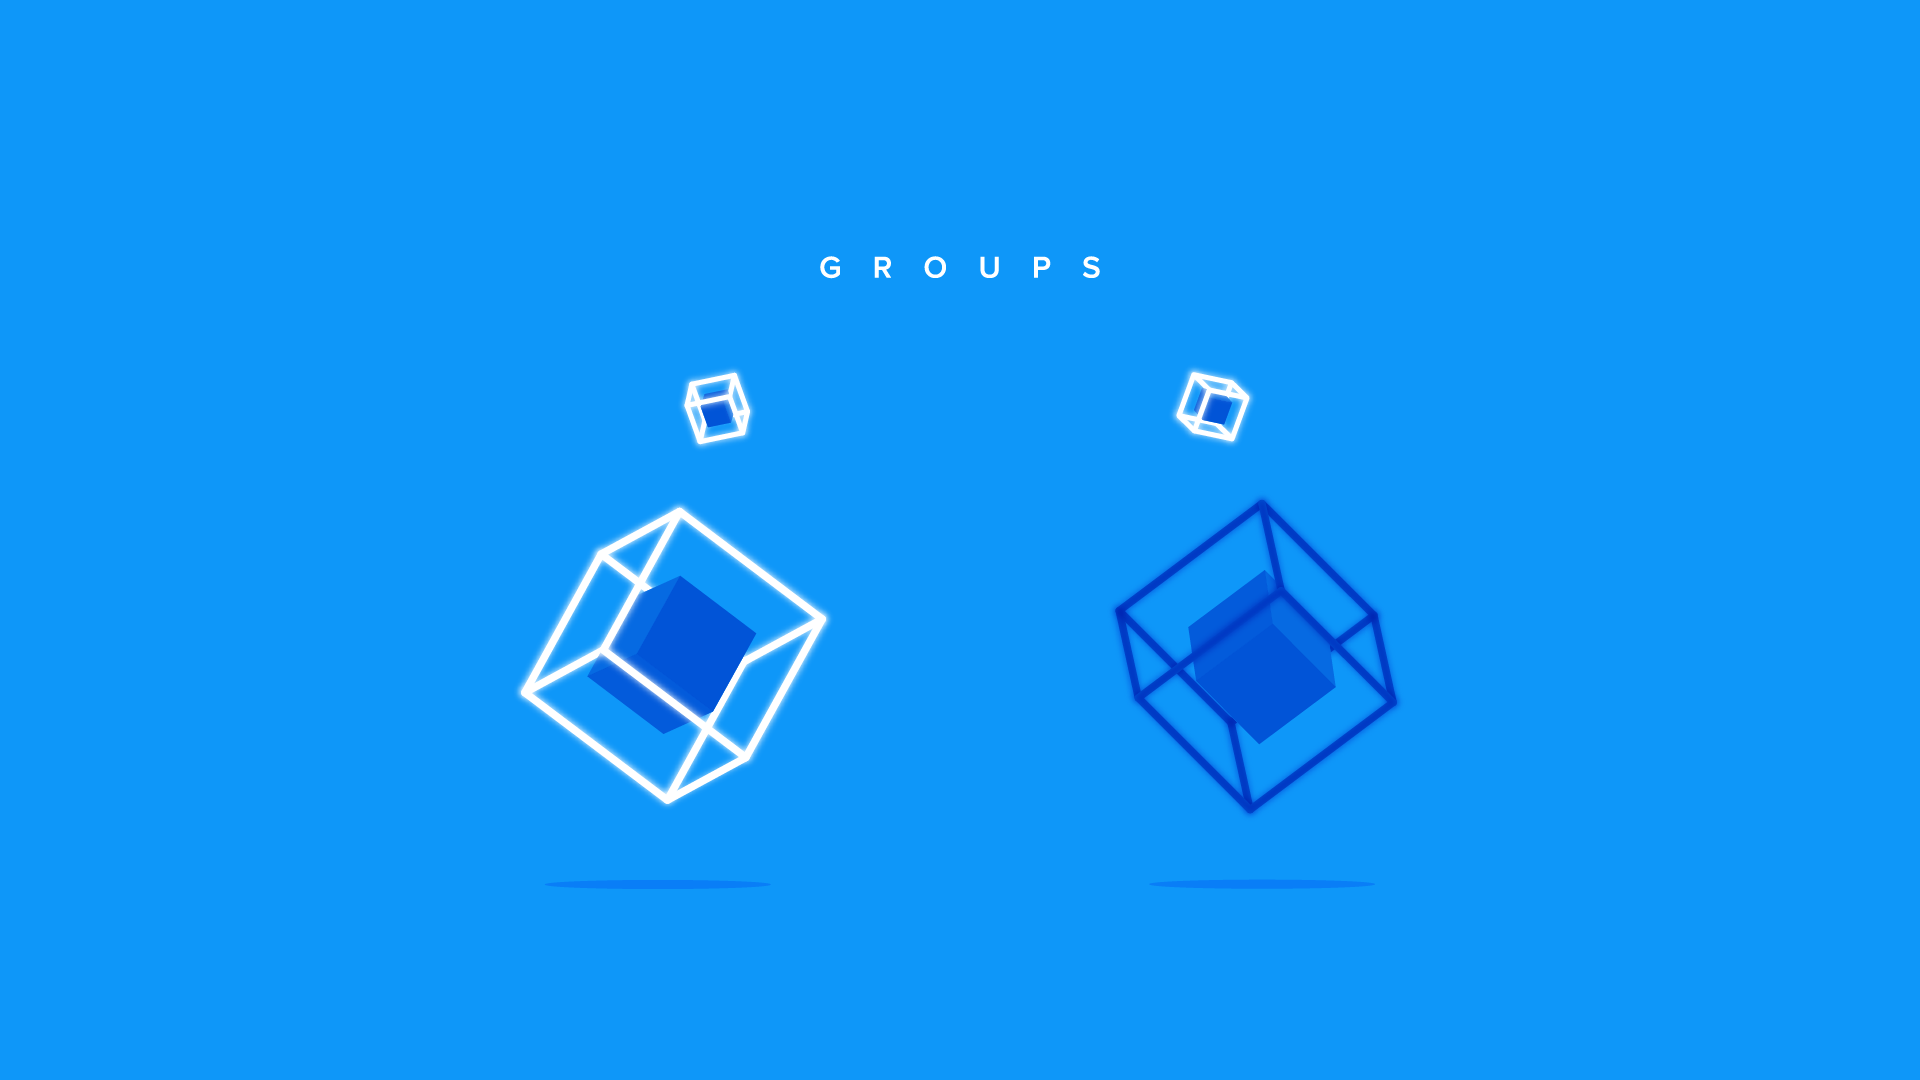 SHAPES-04.png